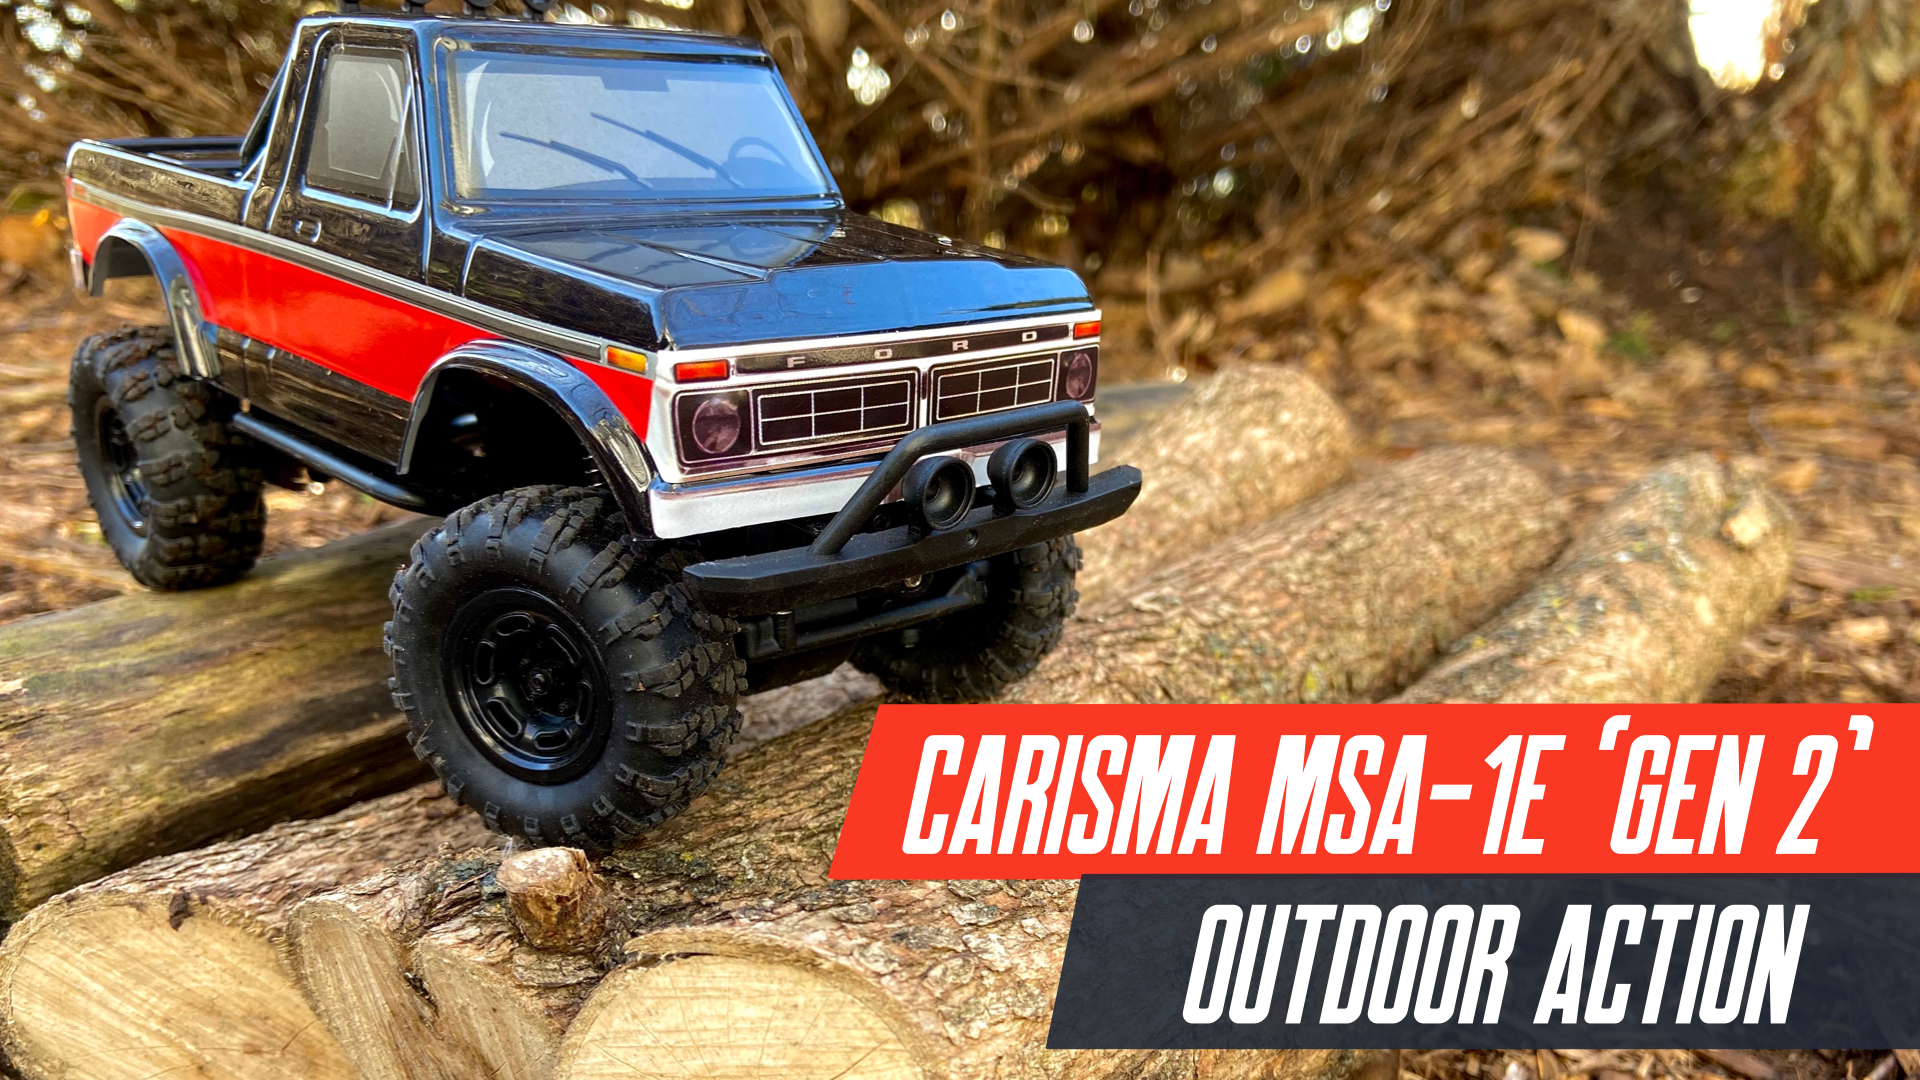 "Outdoor Action with Carisma's MSA-1E ""GEN 2"" [Video]"